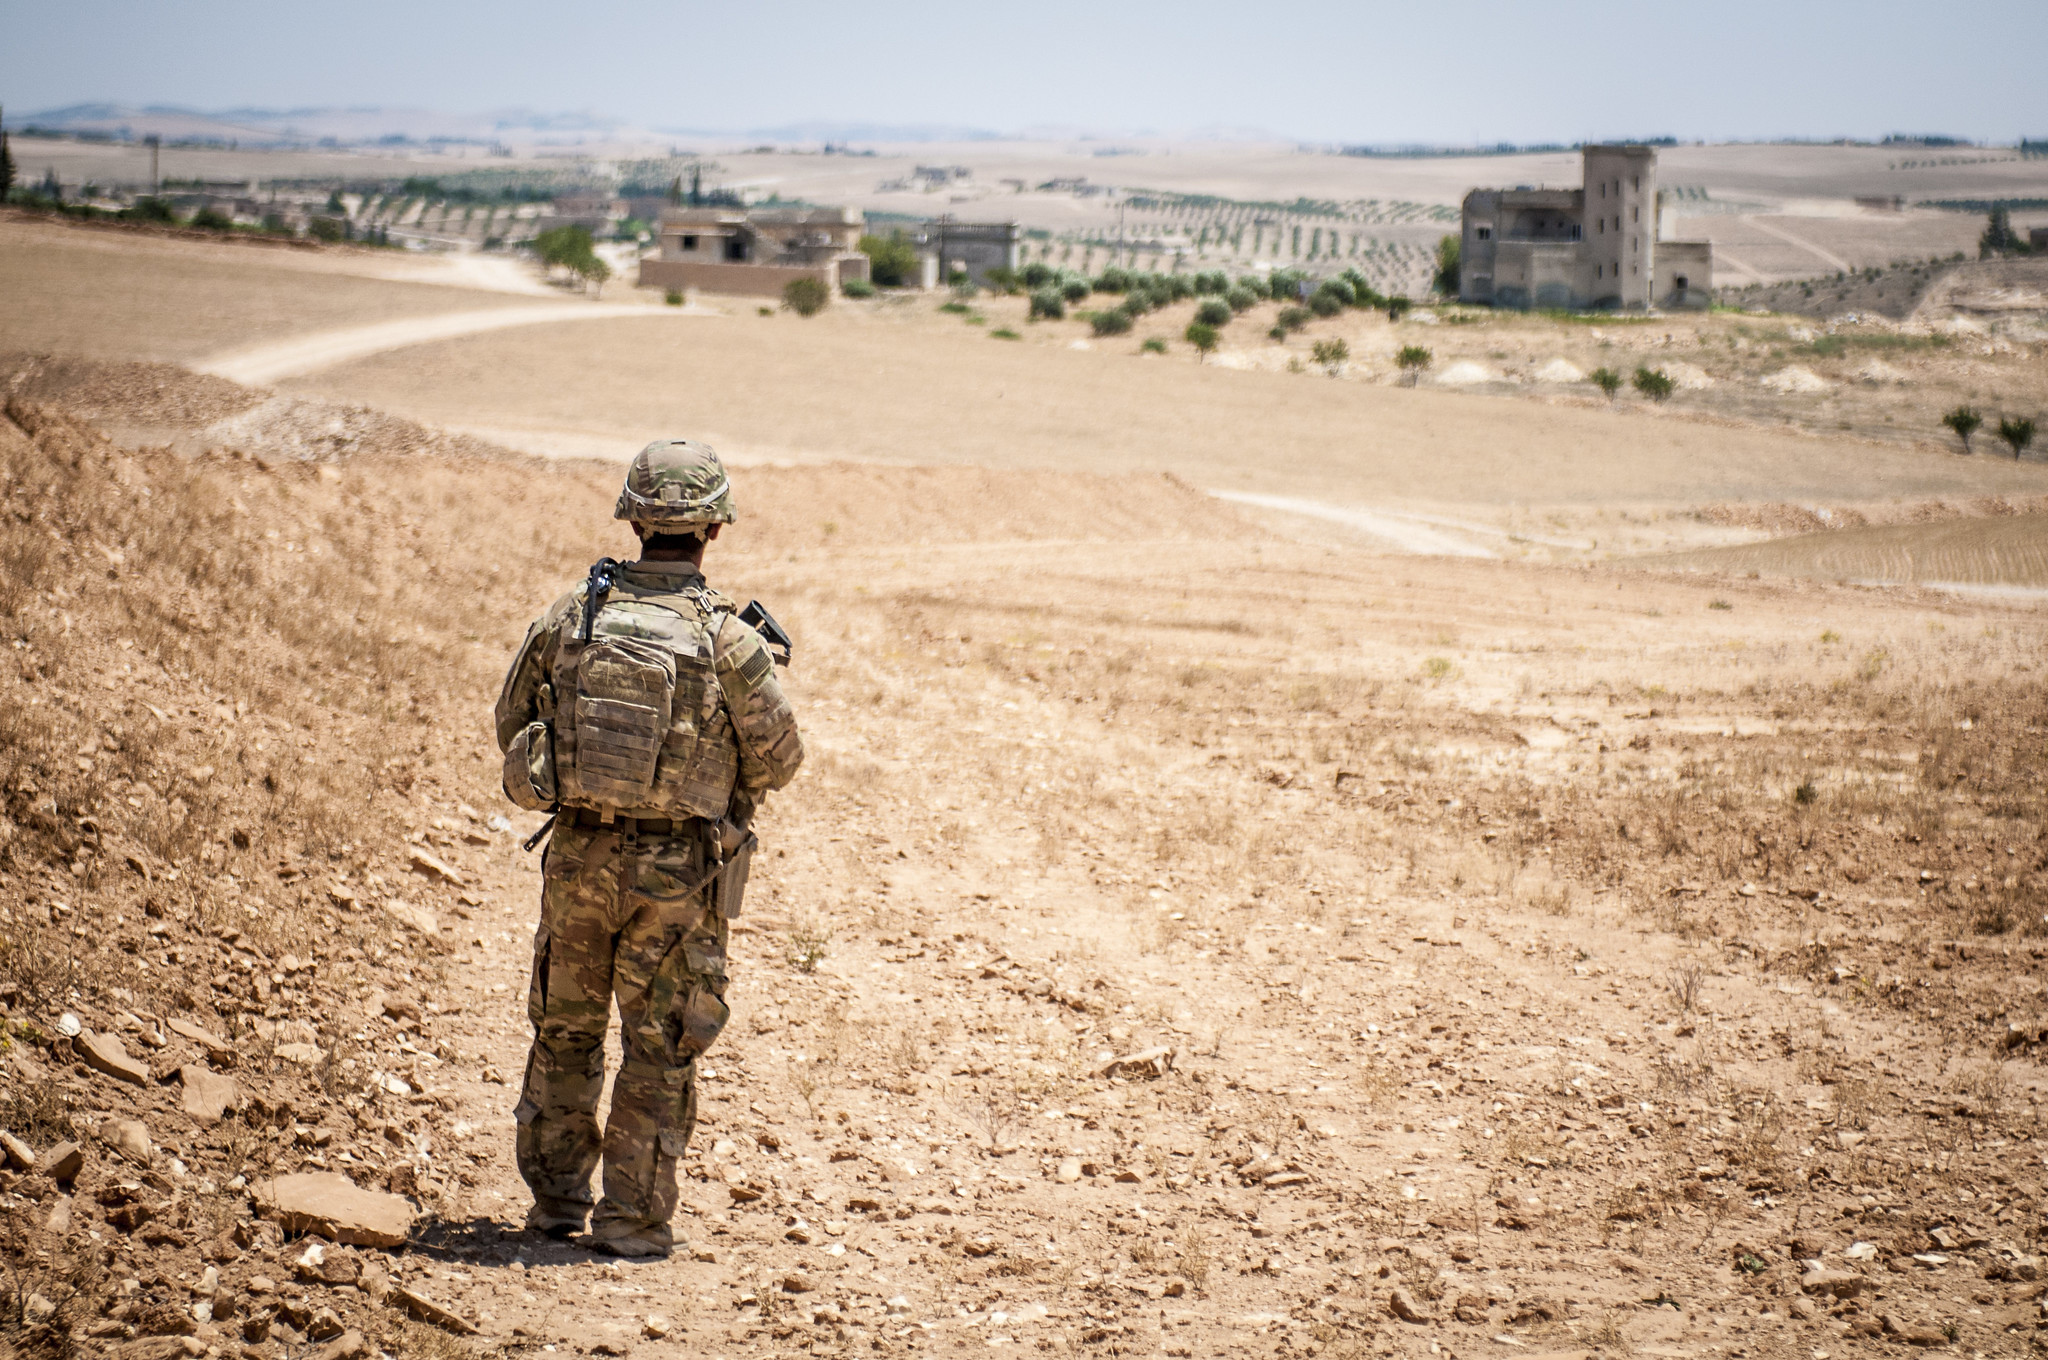 A U.S. soldier provides security during a coordinated, independent patrol along the demarcation line near a village outside Manbij, Syria. (Staff Sgt. Timothy R. Koster/Army)